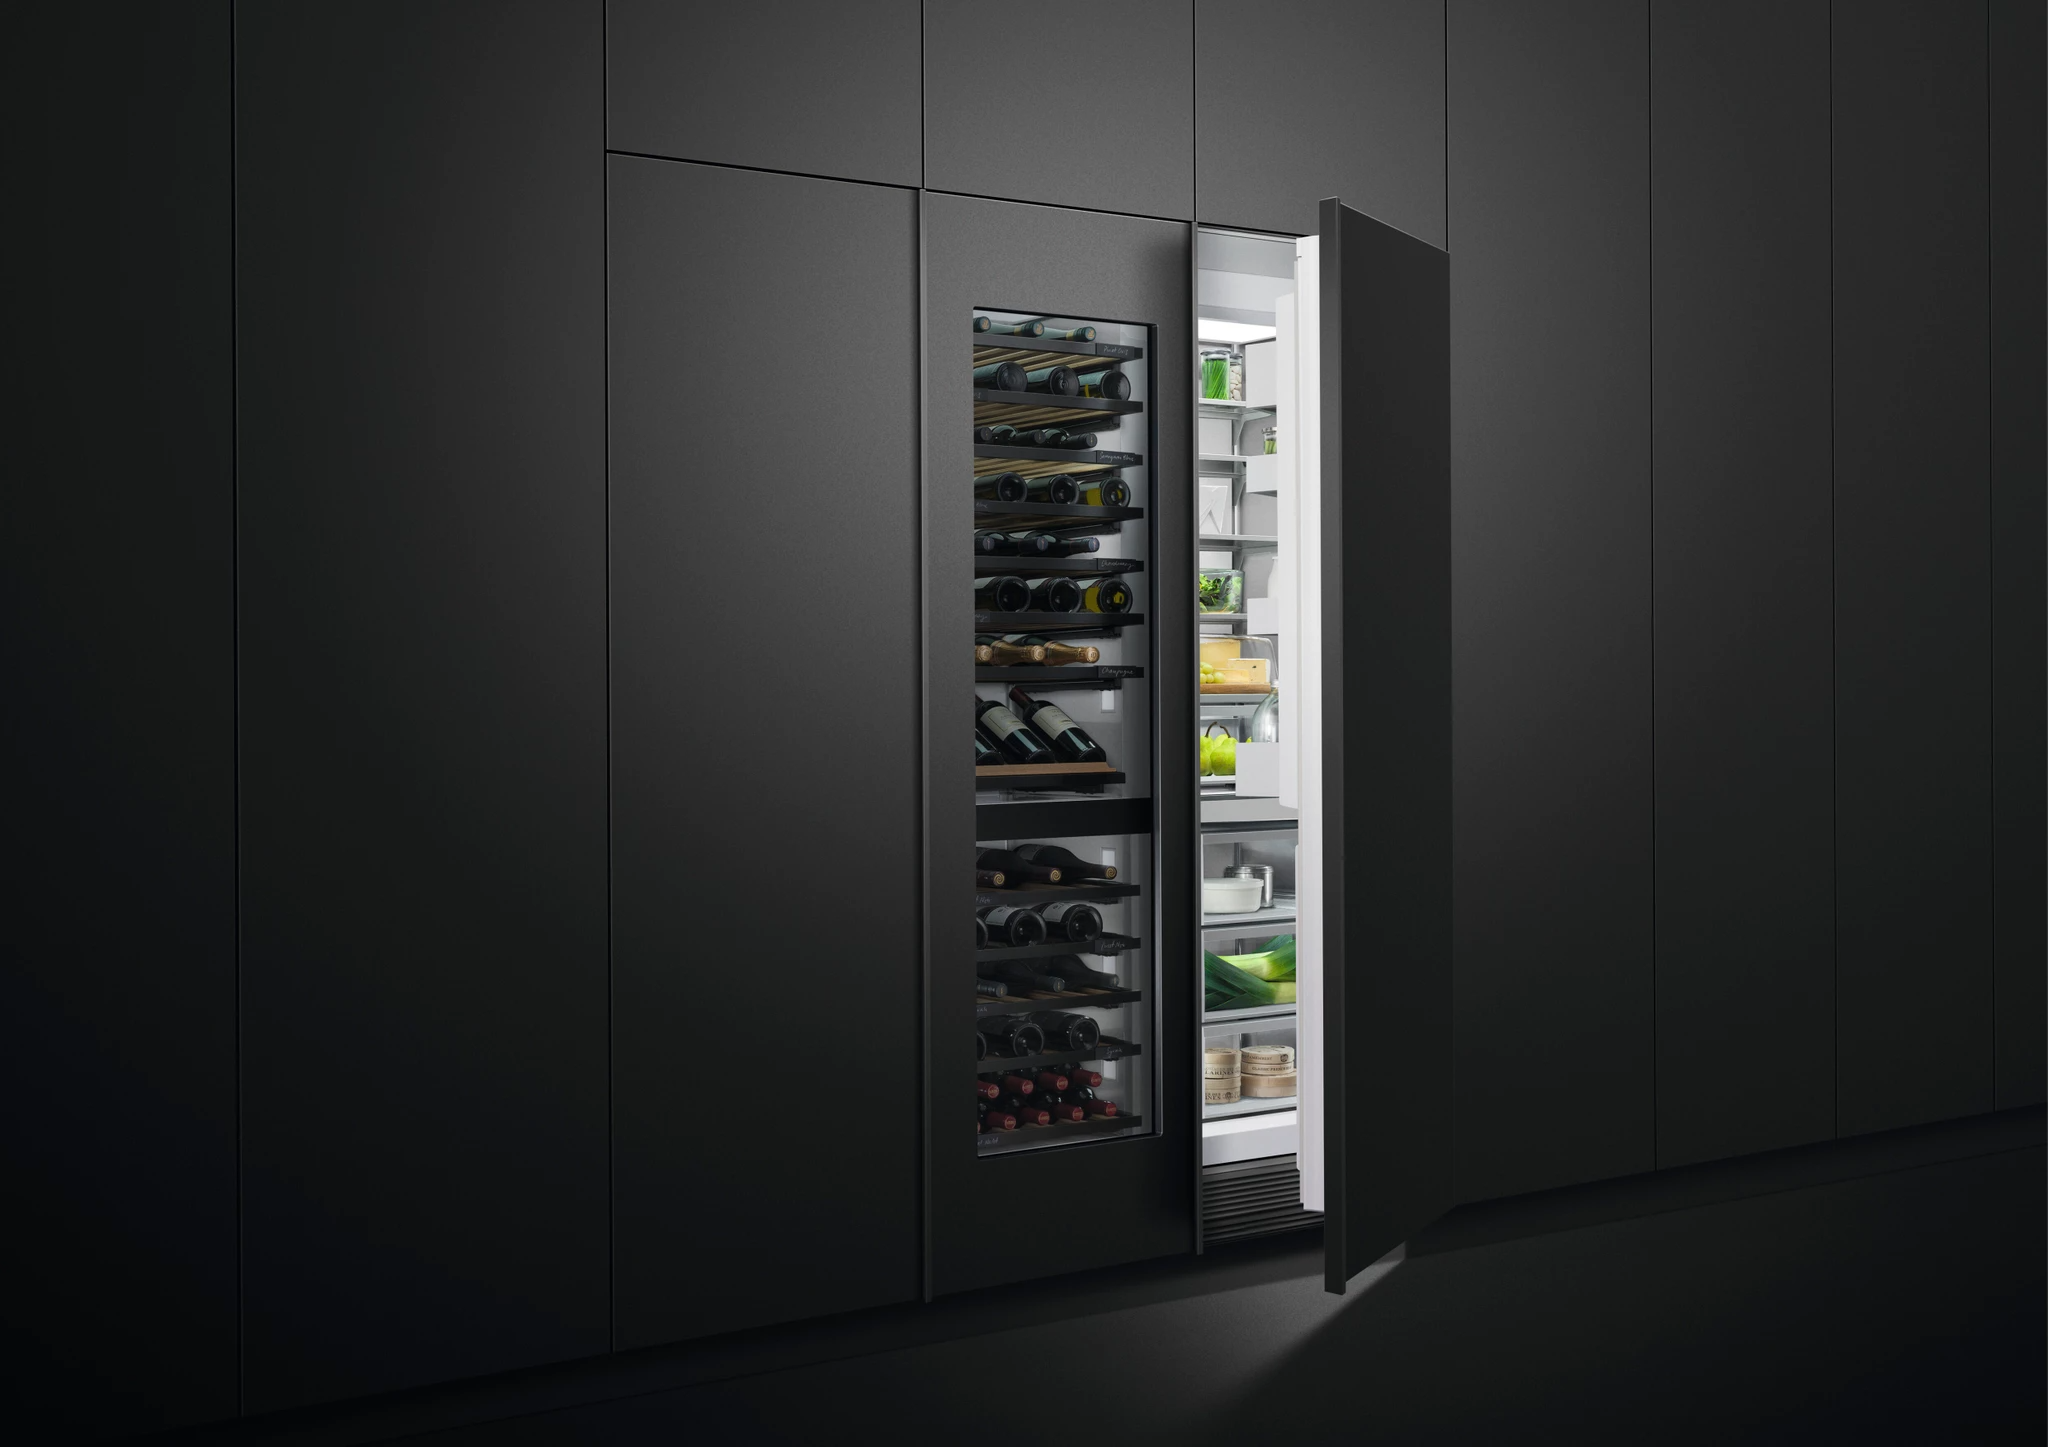 Fisher & Paykel - Gift with Purchase - Receive a Free Dishwasher, or Upgrade & Save